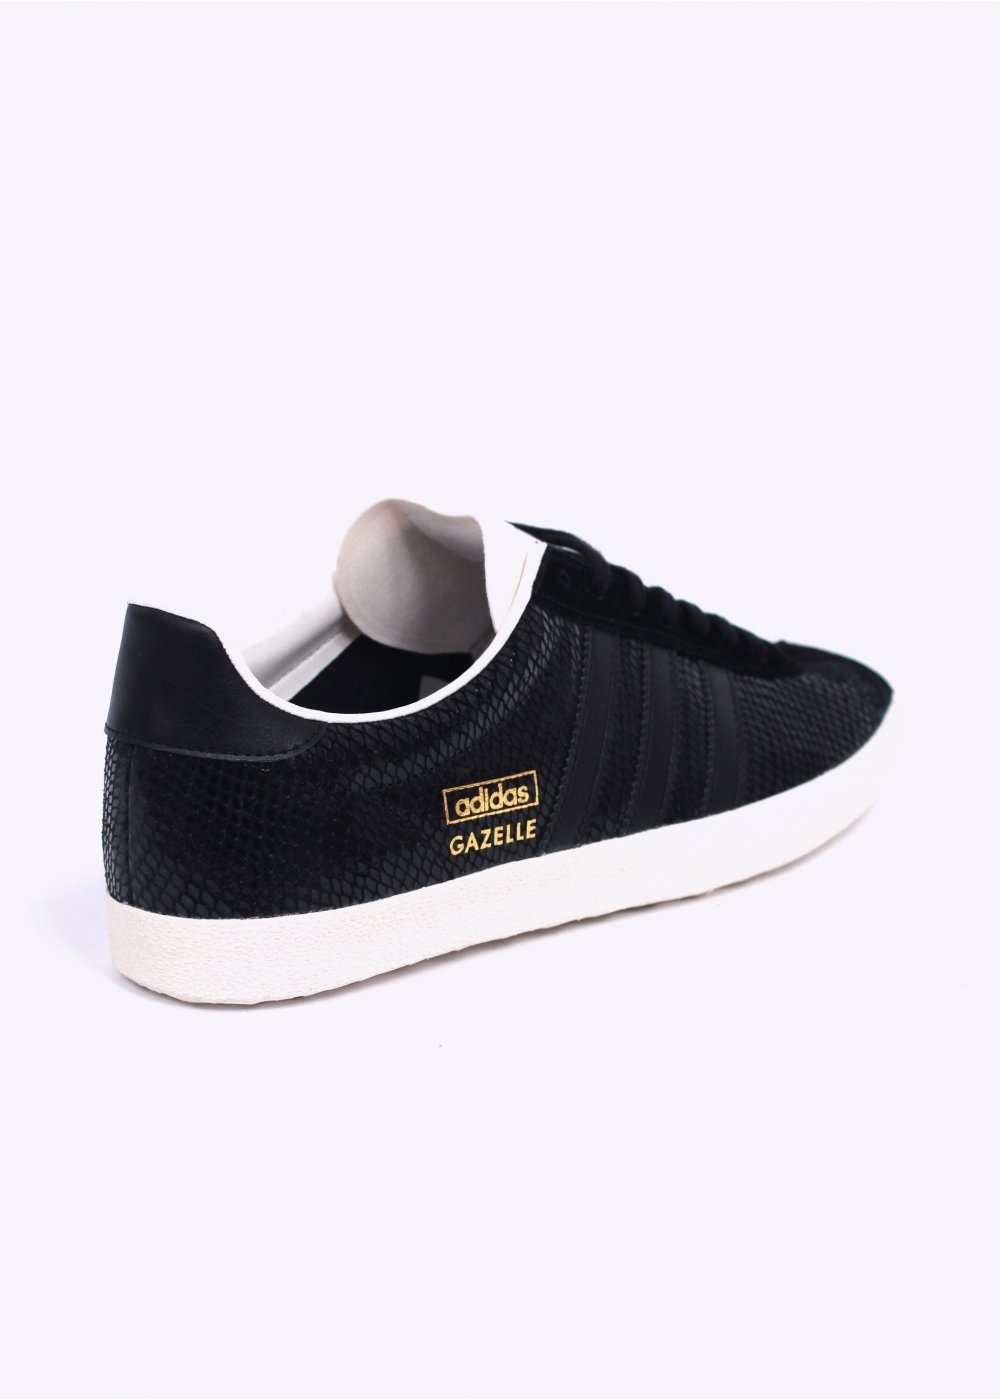 adidas gazelle womens black snake